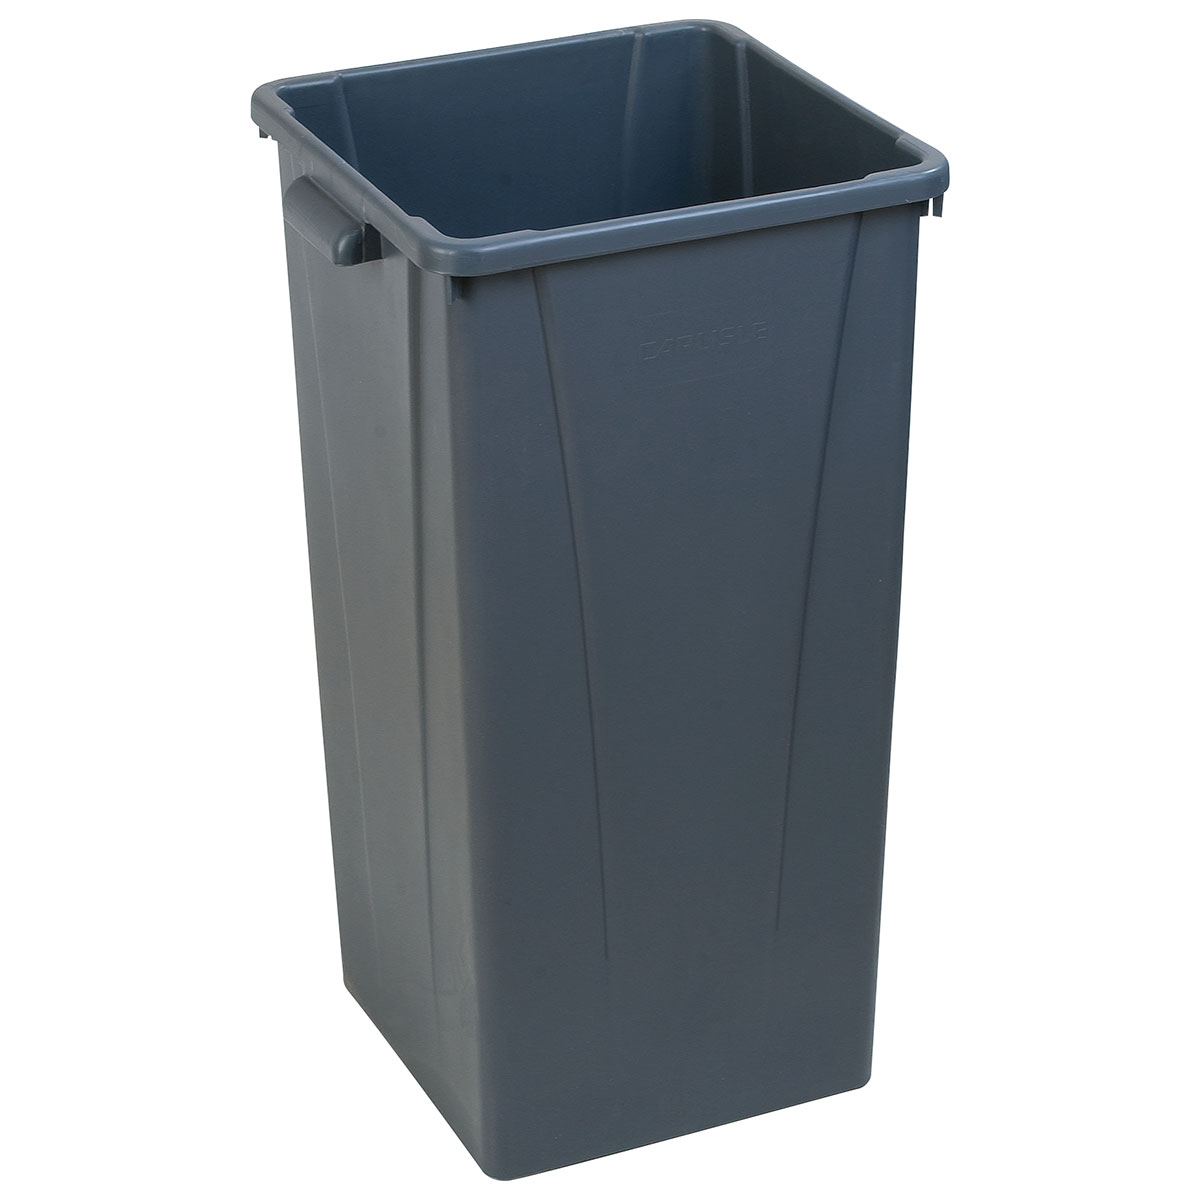 Carlisle 343523-23 23-gal Square Waste Container - Polyethylene, Gray